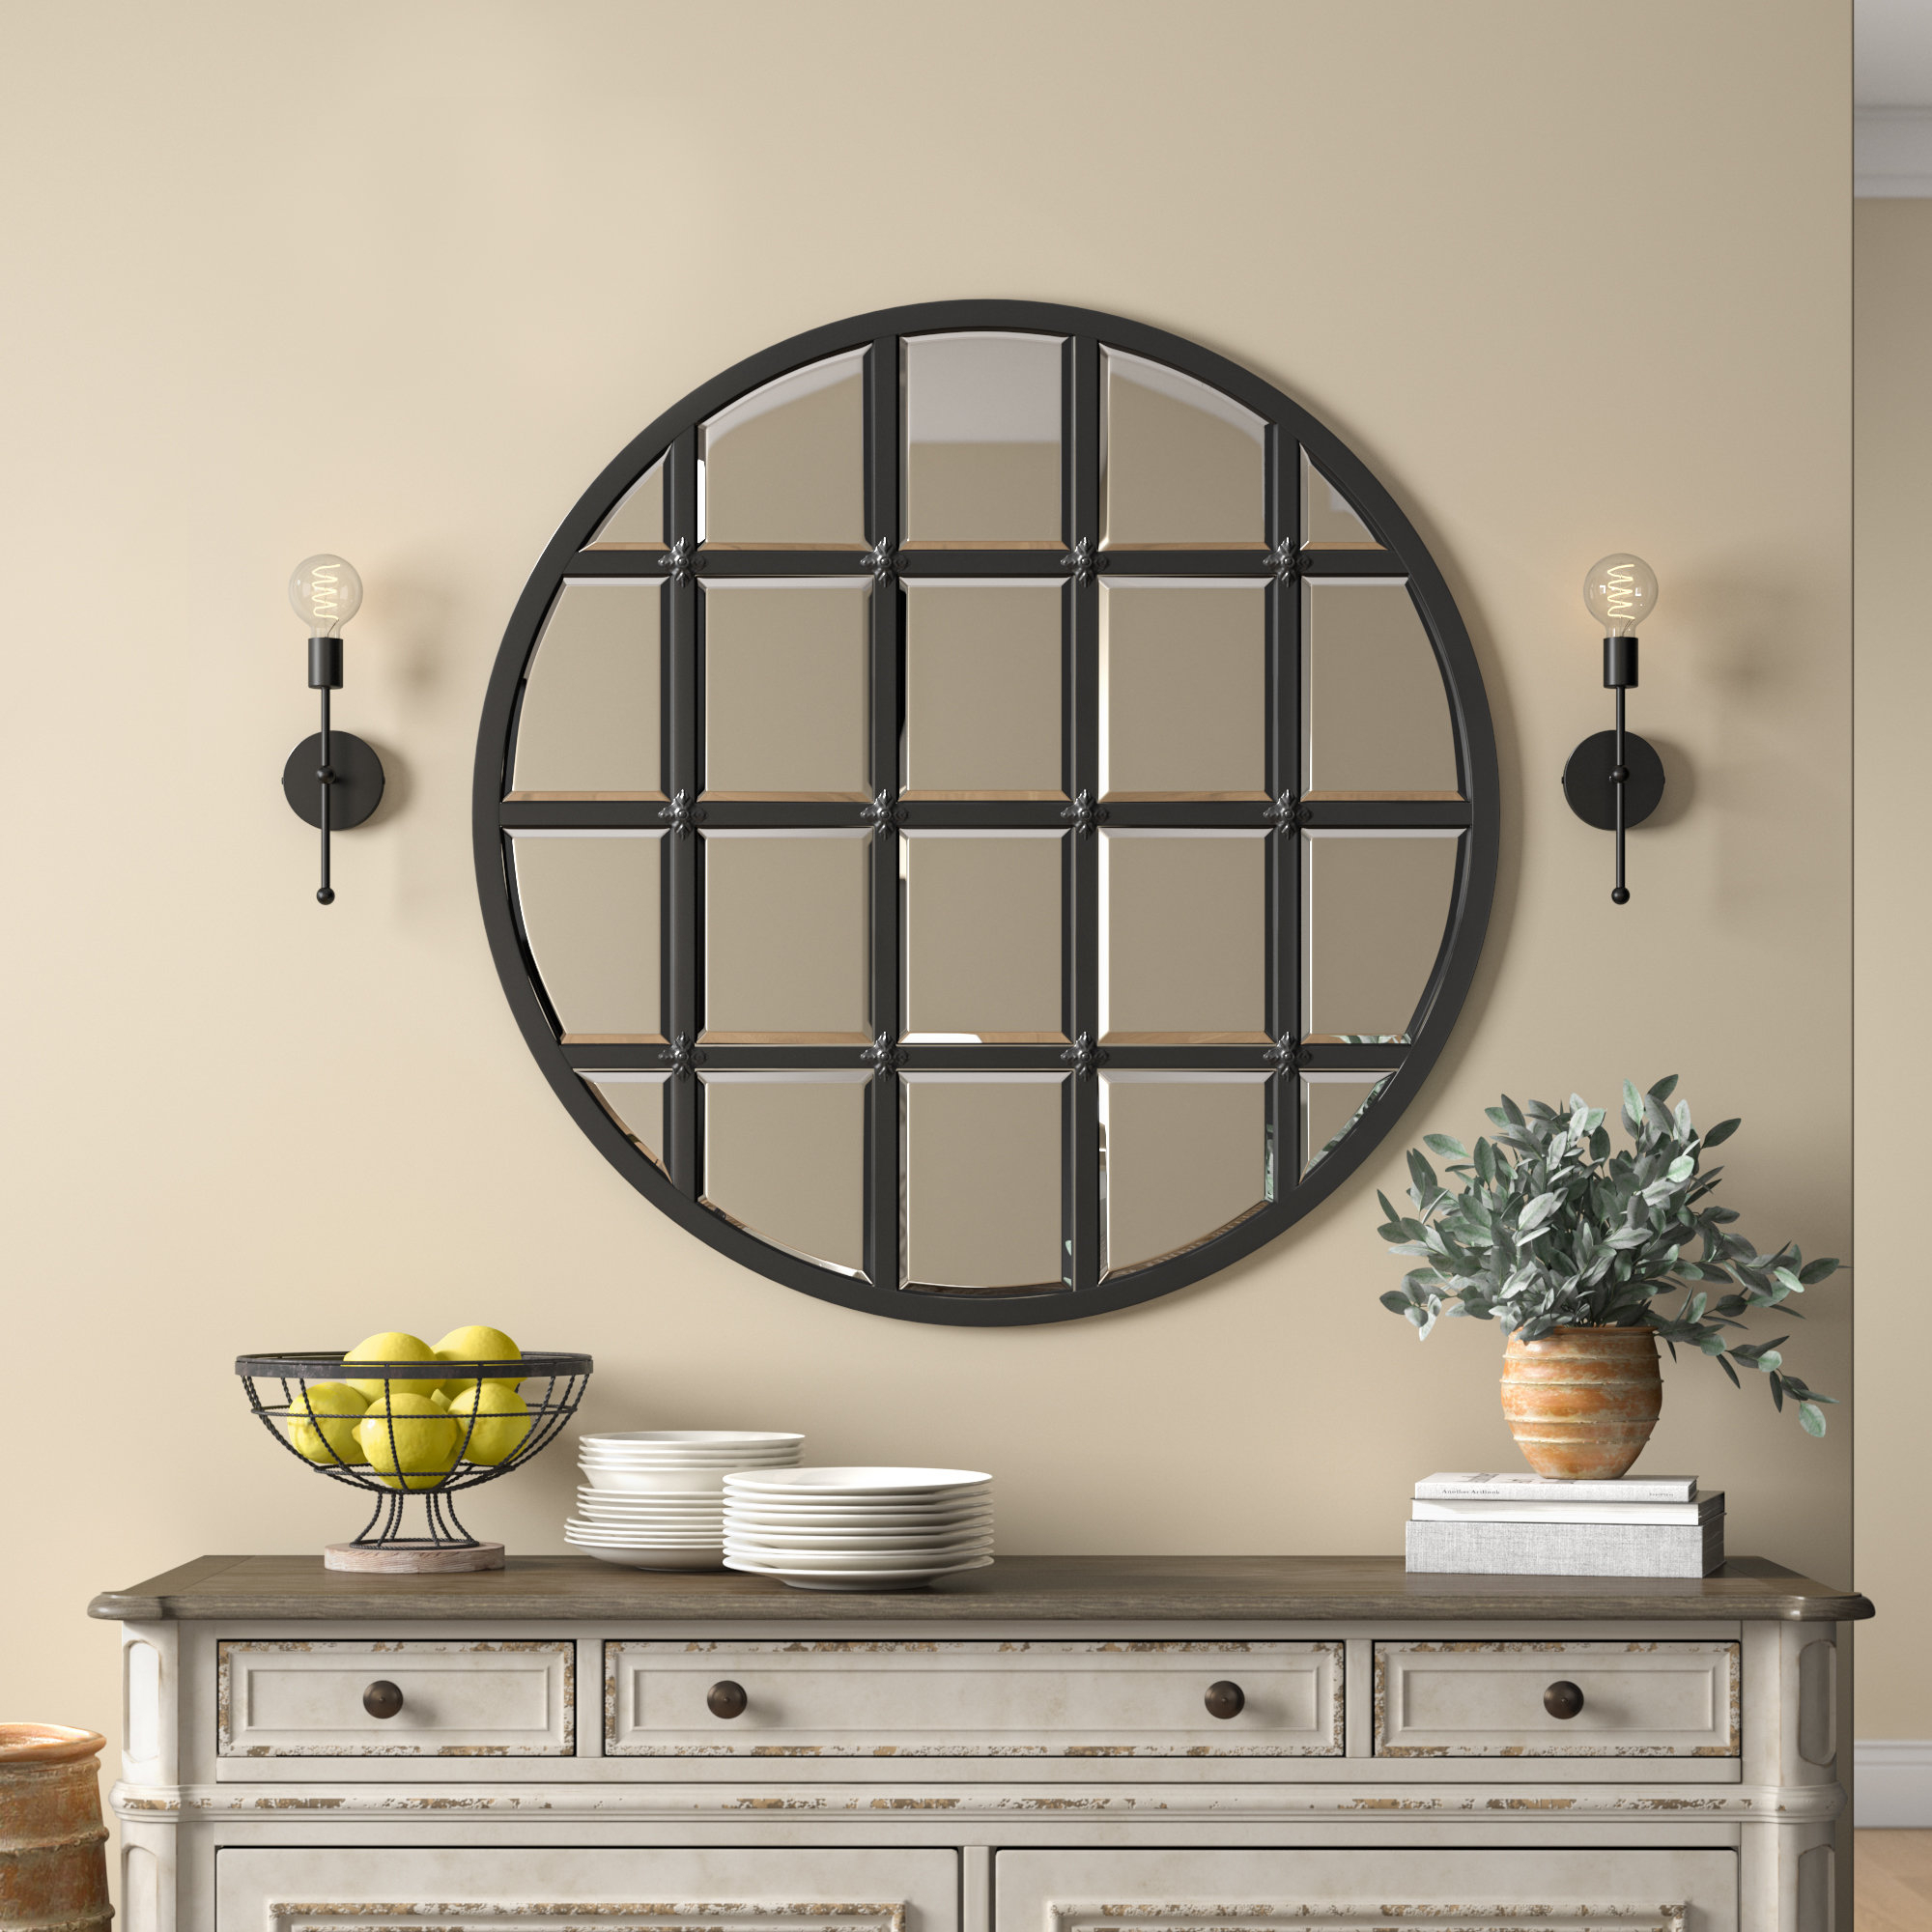 Black Industrial Wall Mirrors You'll Love In 2019 | Wayfair Regarding Austin Industrial Accent Mirrors (View 13 of 30)